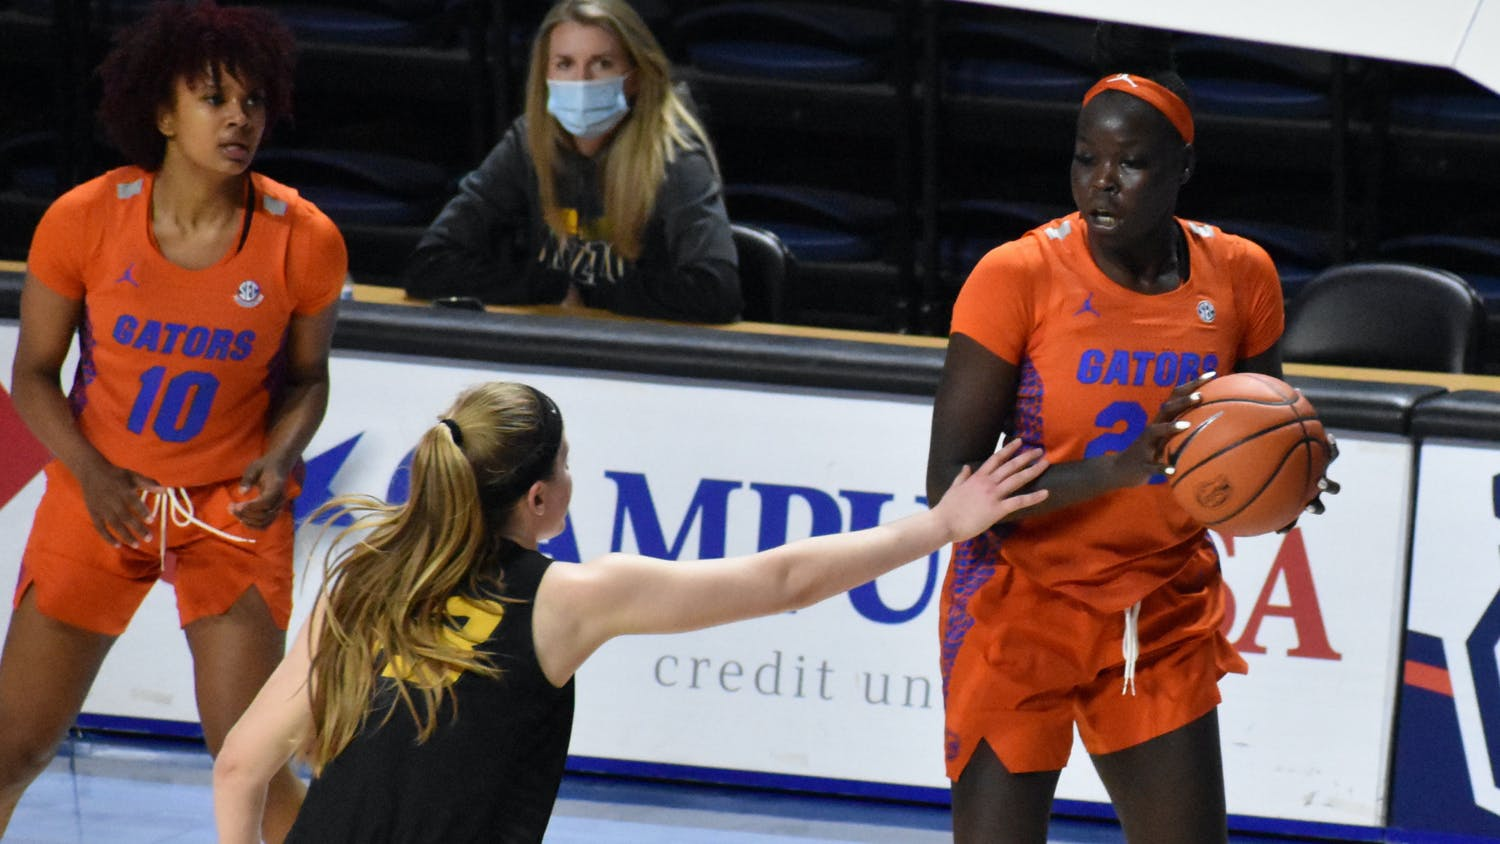 It took Florida nearly three minutes to get on the scoreboard before sophomore Faith Dut hit both free throws to cut LSU's lead in half.